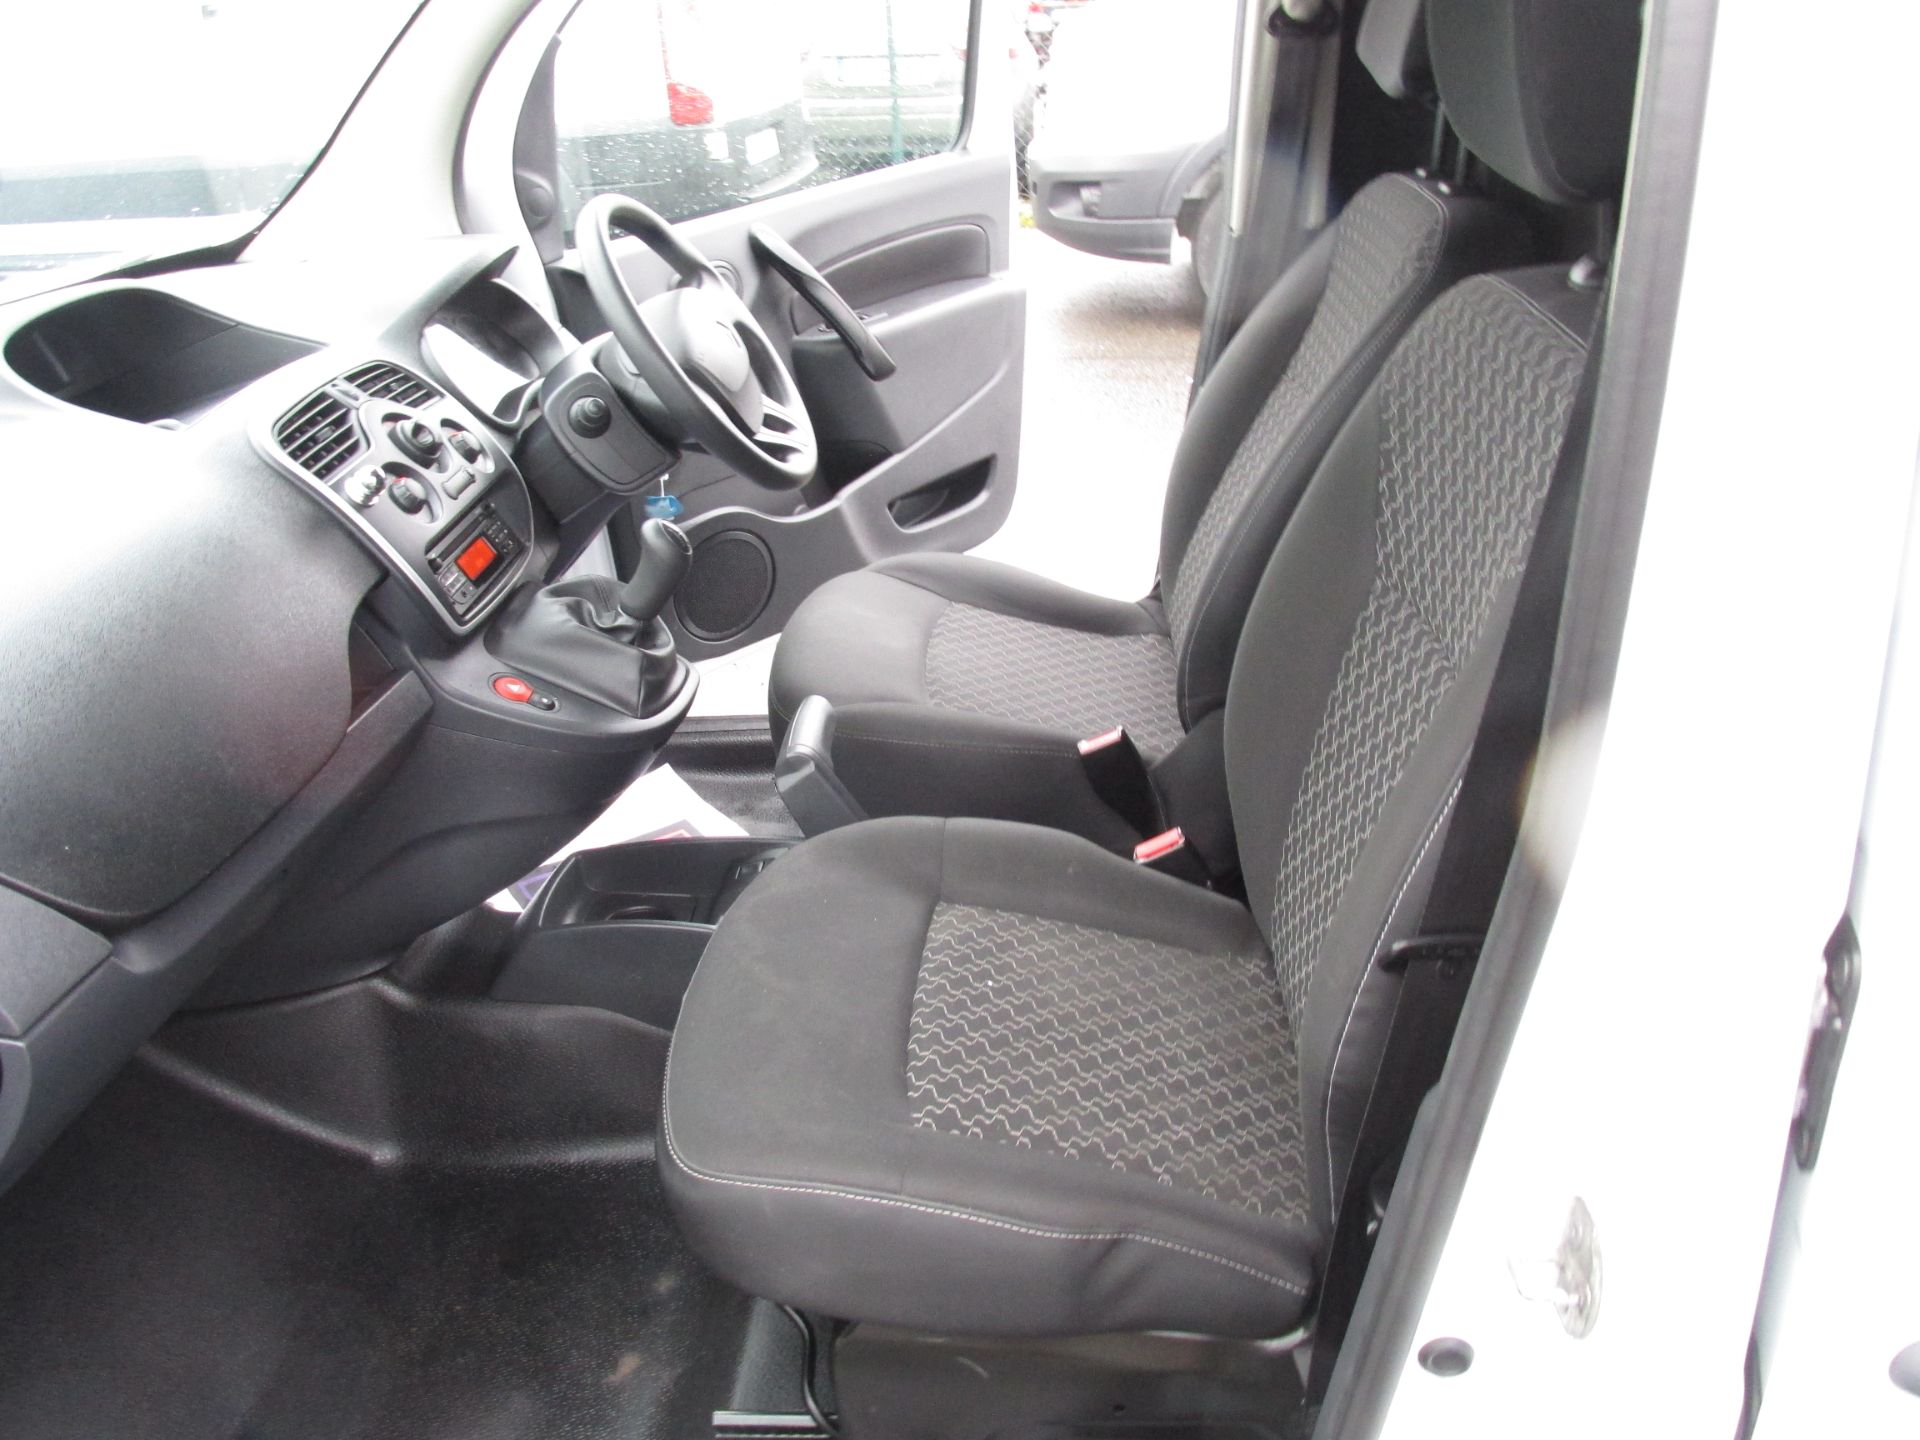 2017 Renault Kangoo ML19 Energy DCI 75 Business 2D click and collect call sales for more info (171D10568) Image 11